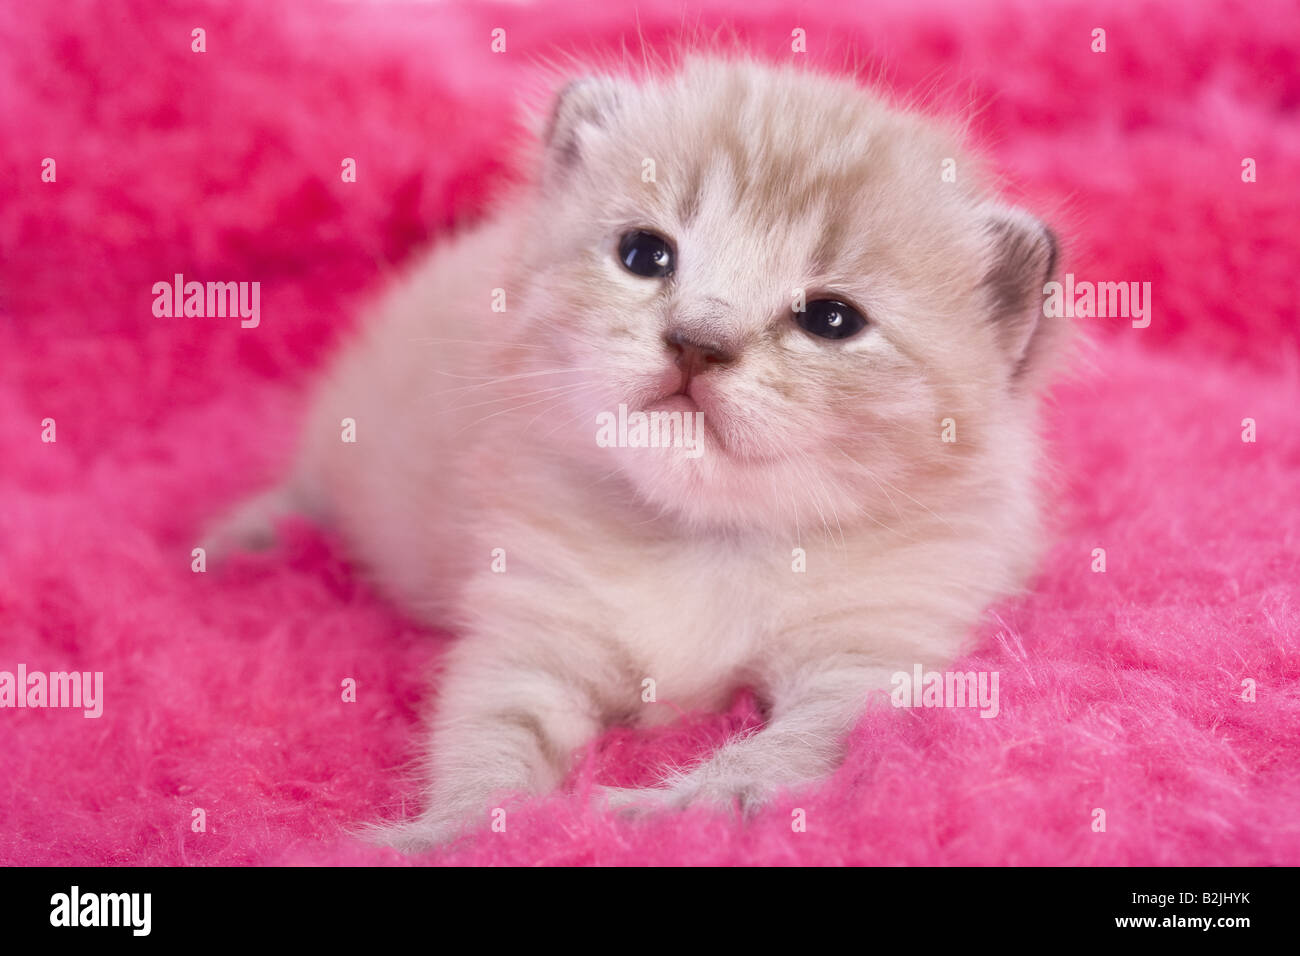 Adorable kitten lying on hot pink furry background Stock